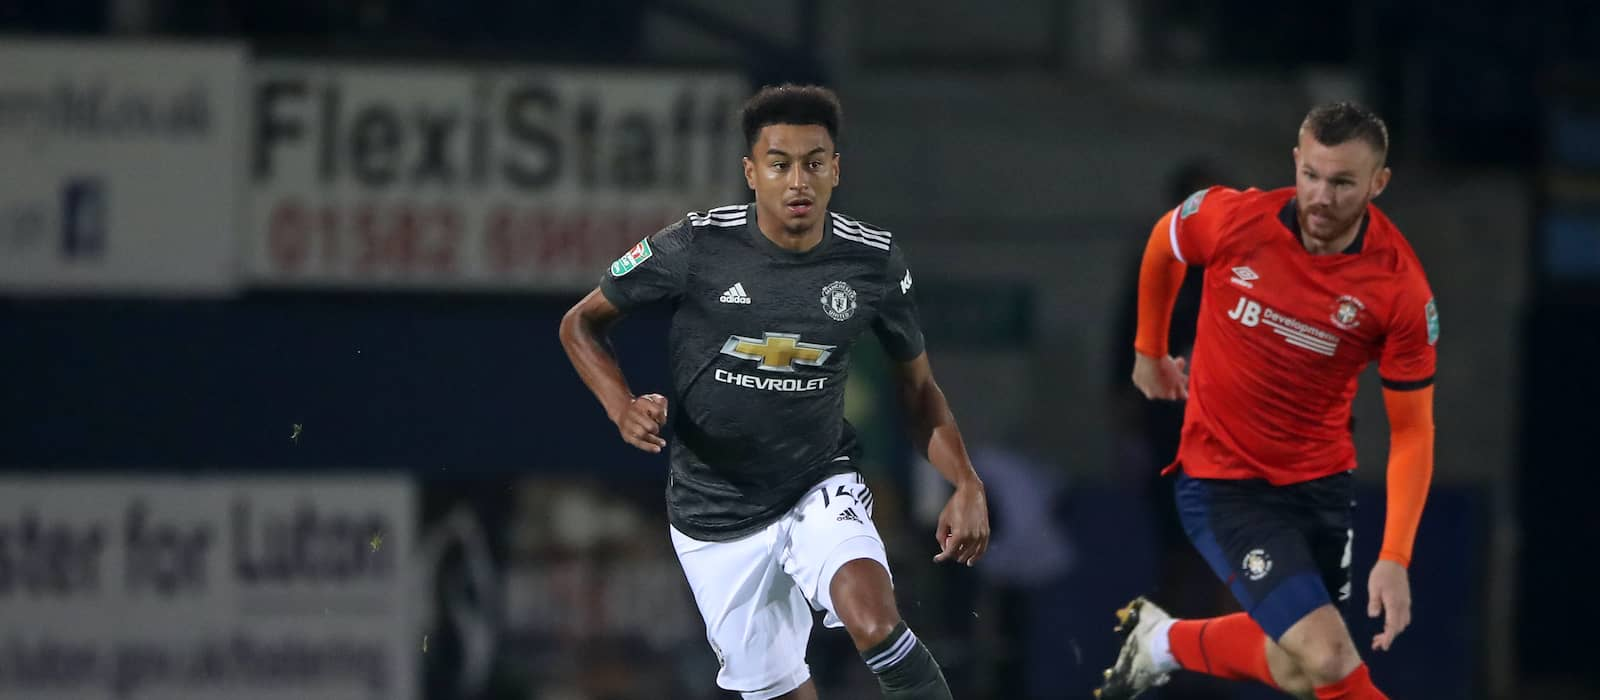 Manchester United star Jesse Lingard potentially on his way out